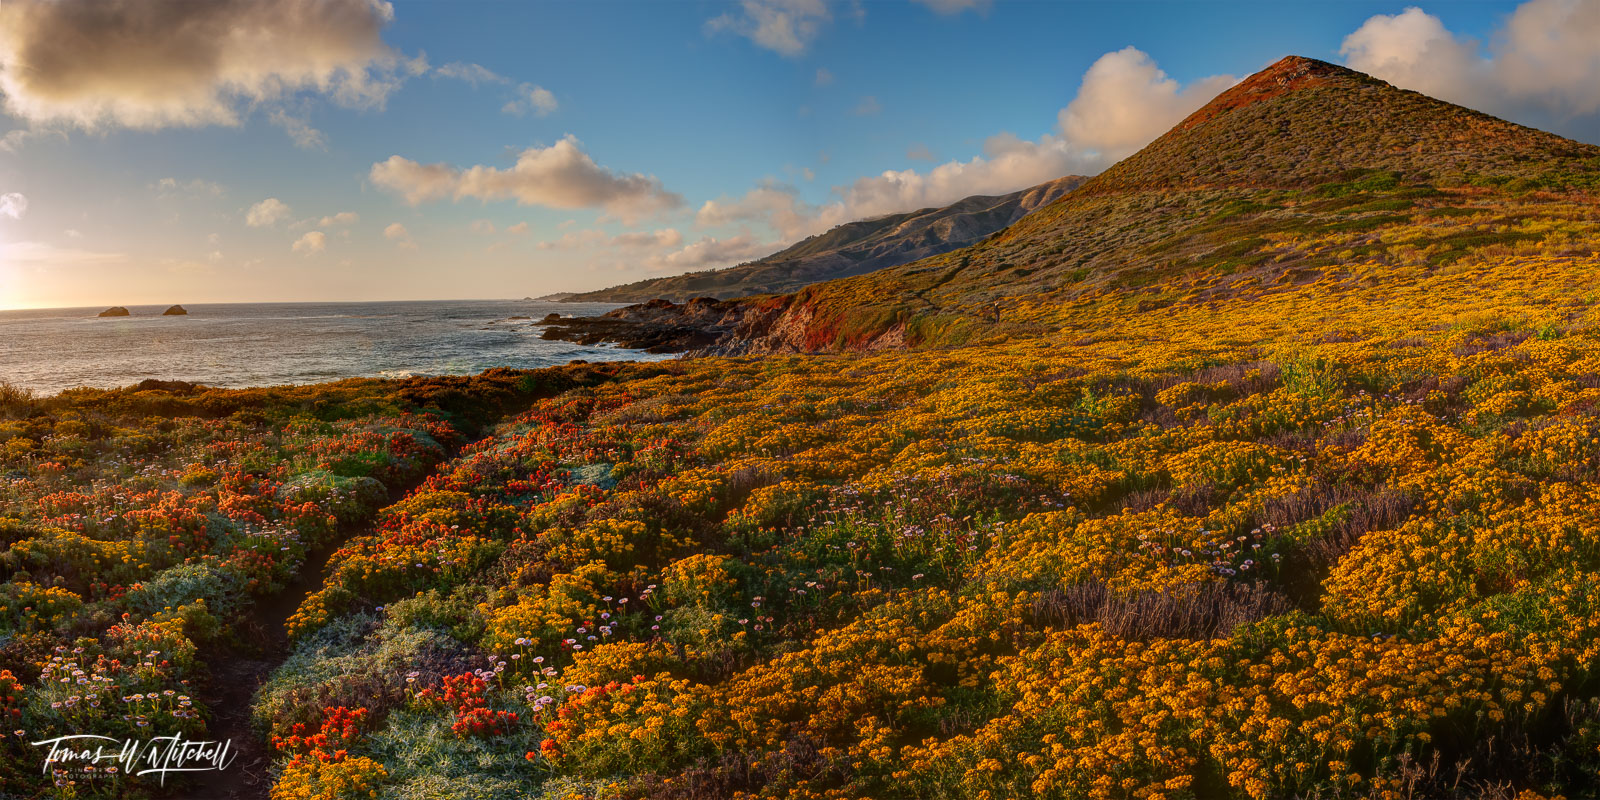 limited edition, fine art, prints, big sur, california, photograph, soberanes point, garrapata state park, wildflowers, panoramic, ocean, coastline, mountain, photo